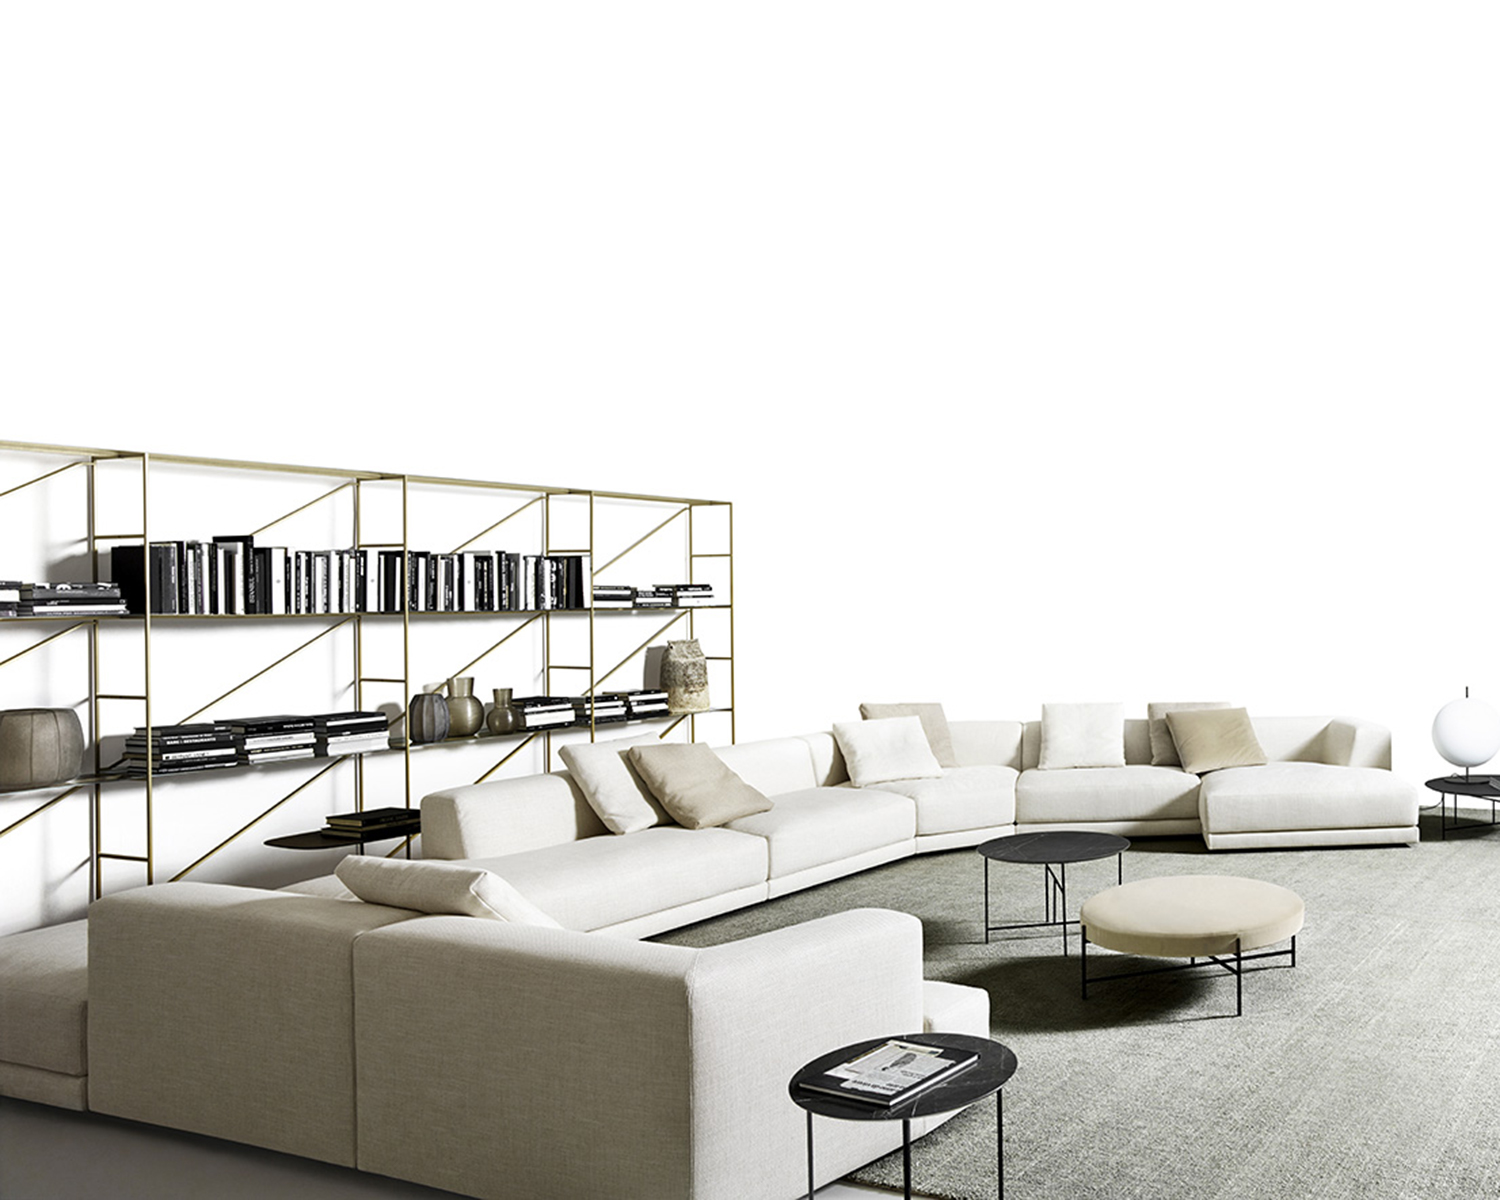 White Alberese modular sectional with throw pillows in various neutral colours, seen from the side